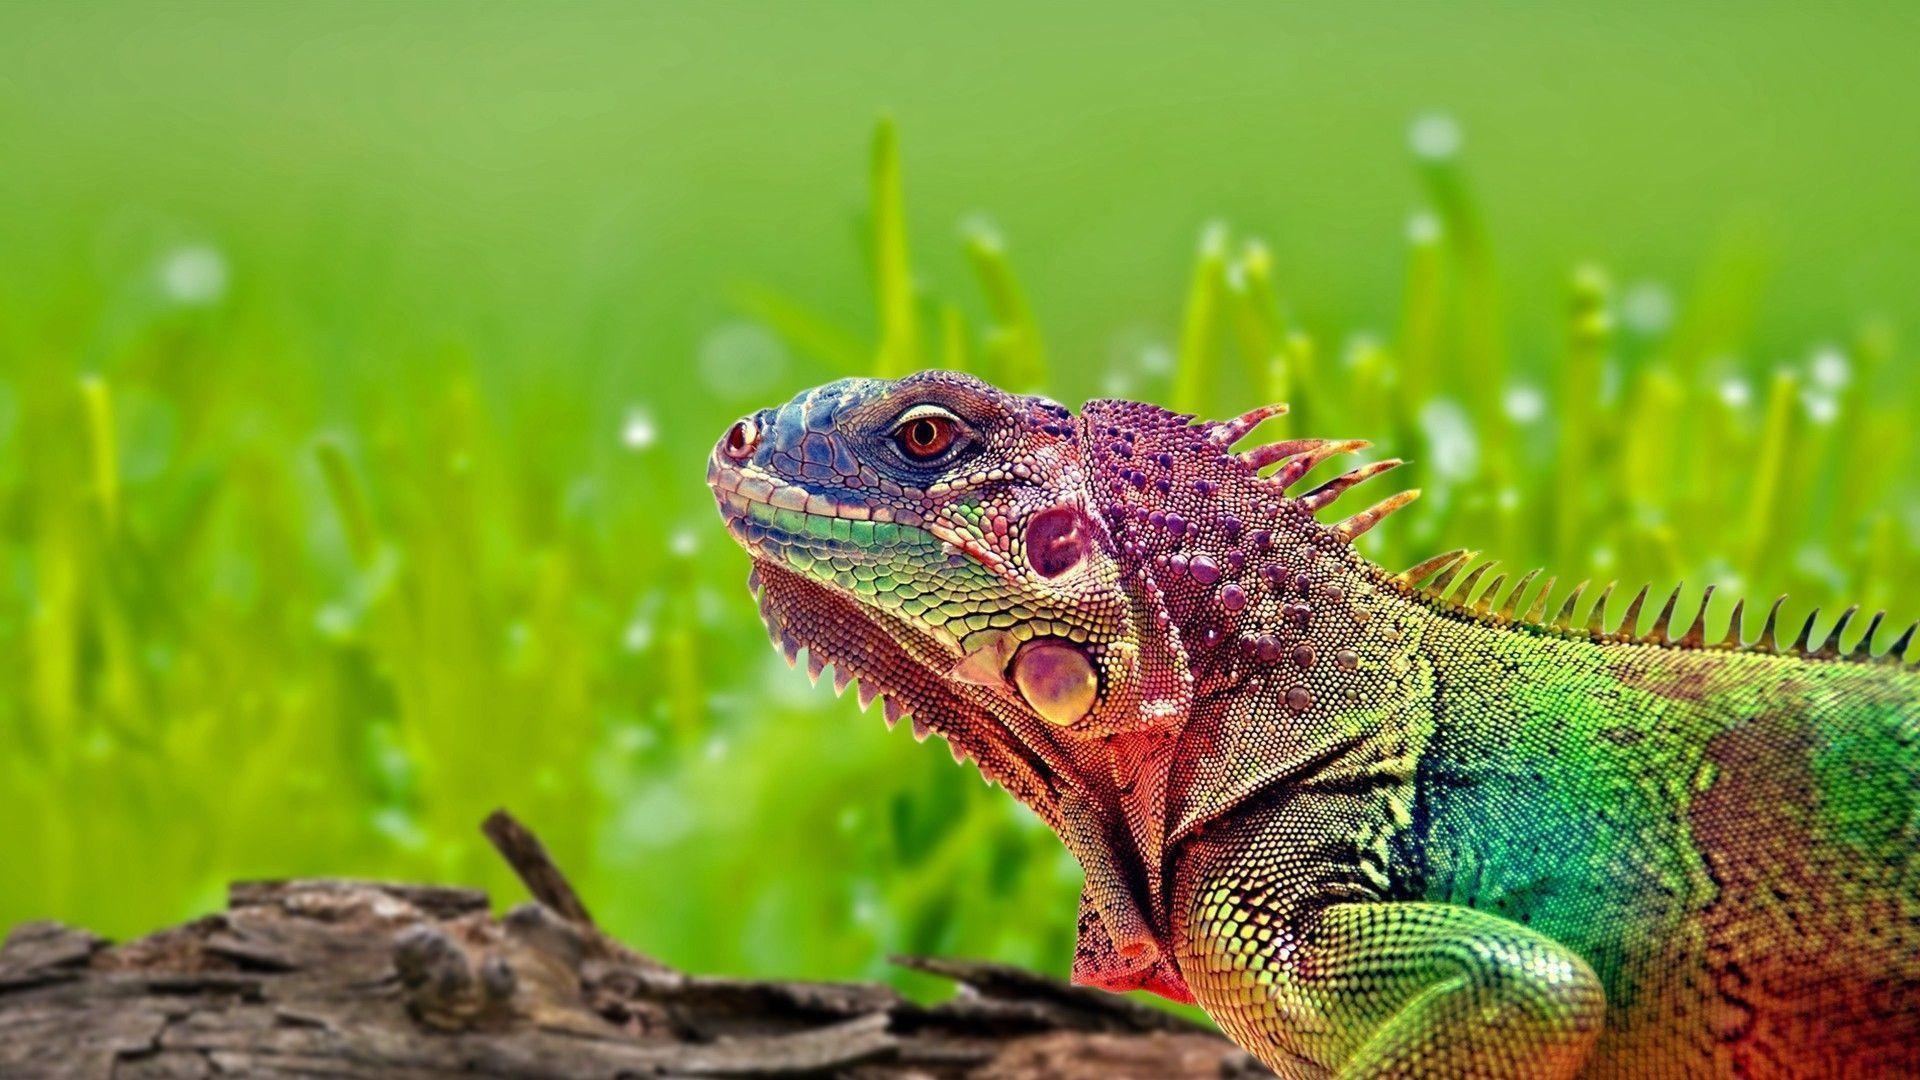 Colorful Lizard Wallpapers 15386 1920x1080 px